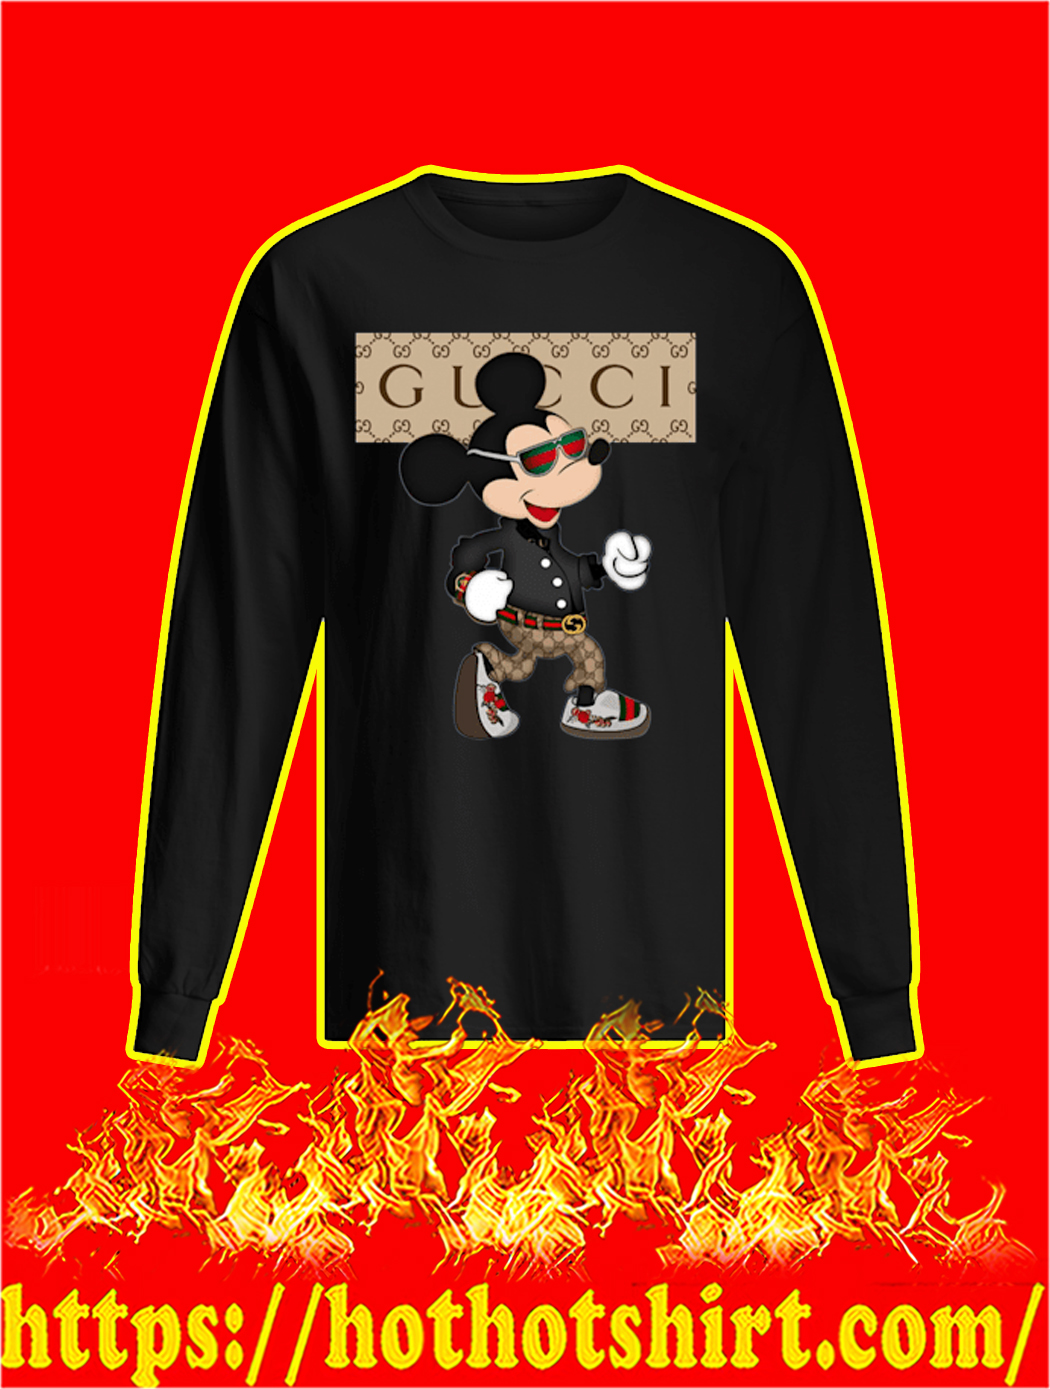 Gucci Mickey Mouse Long Sleeved T-shirt